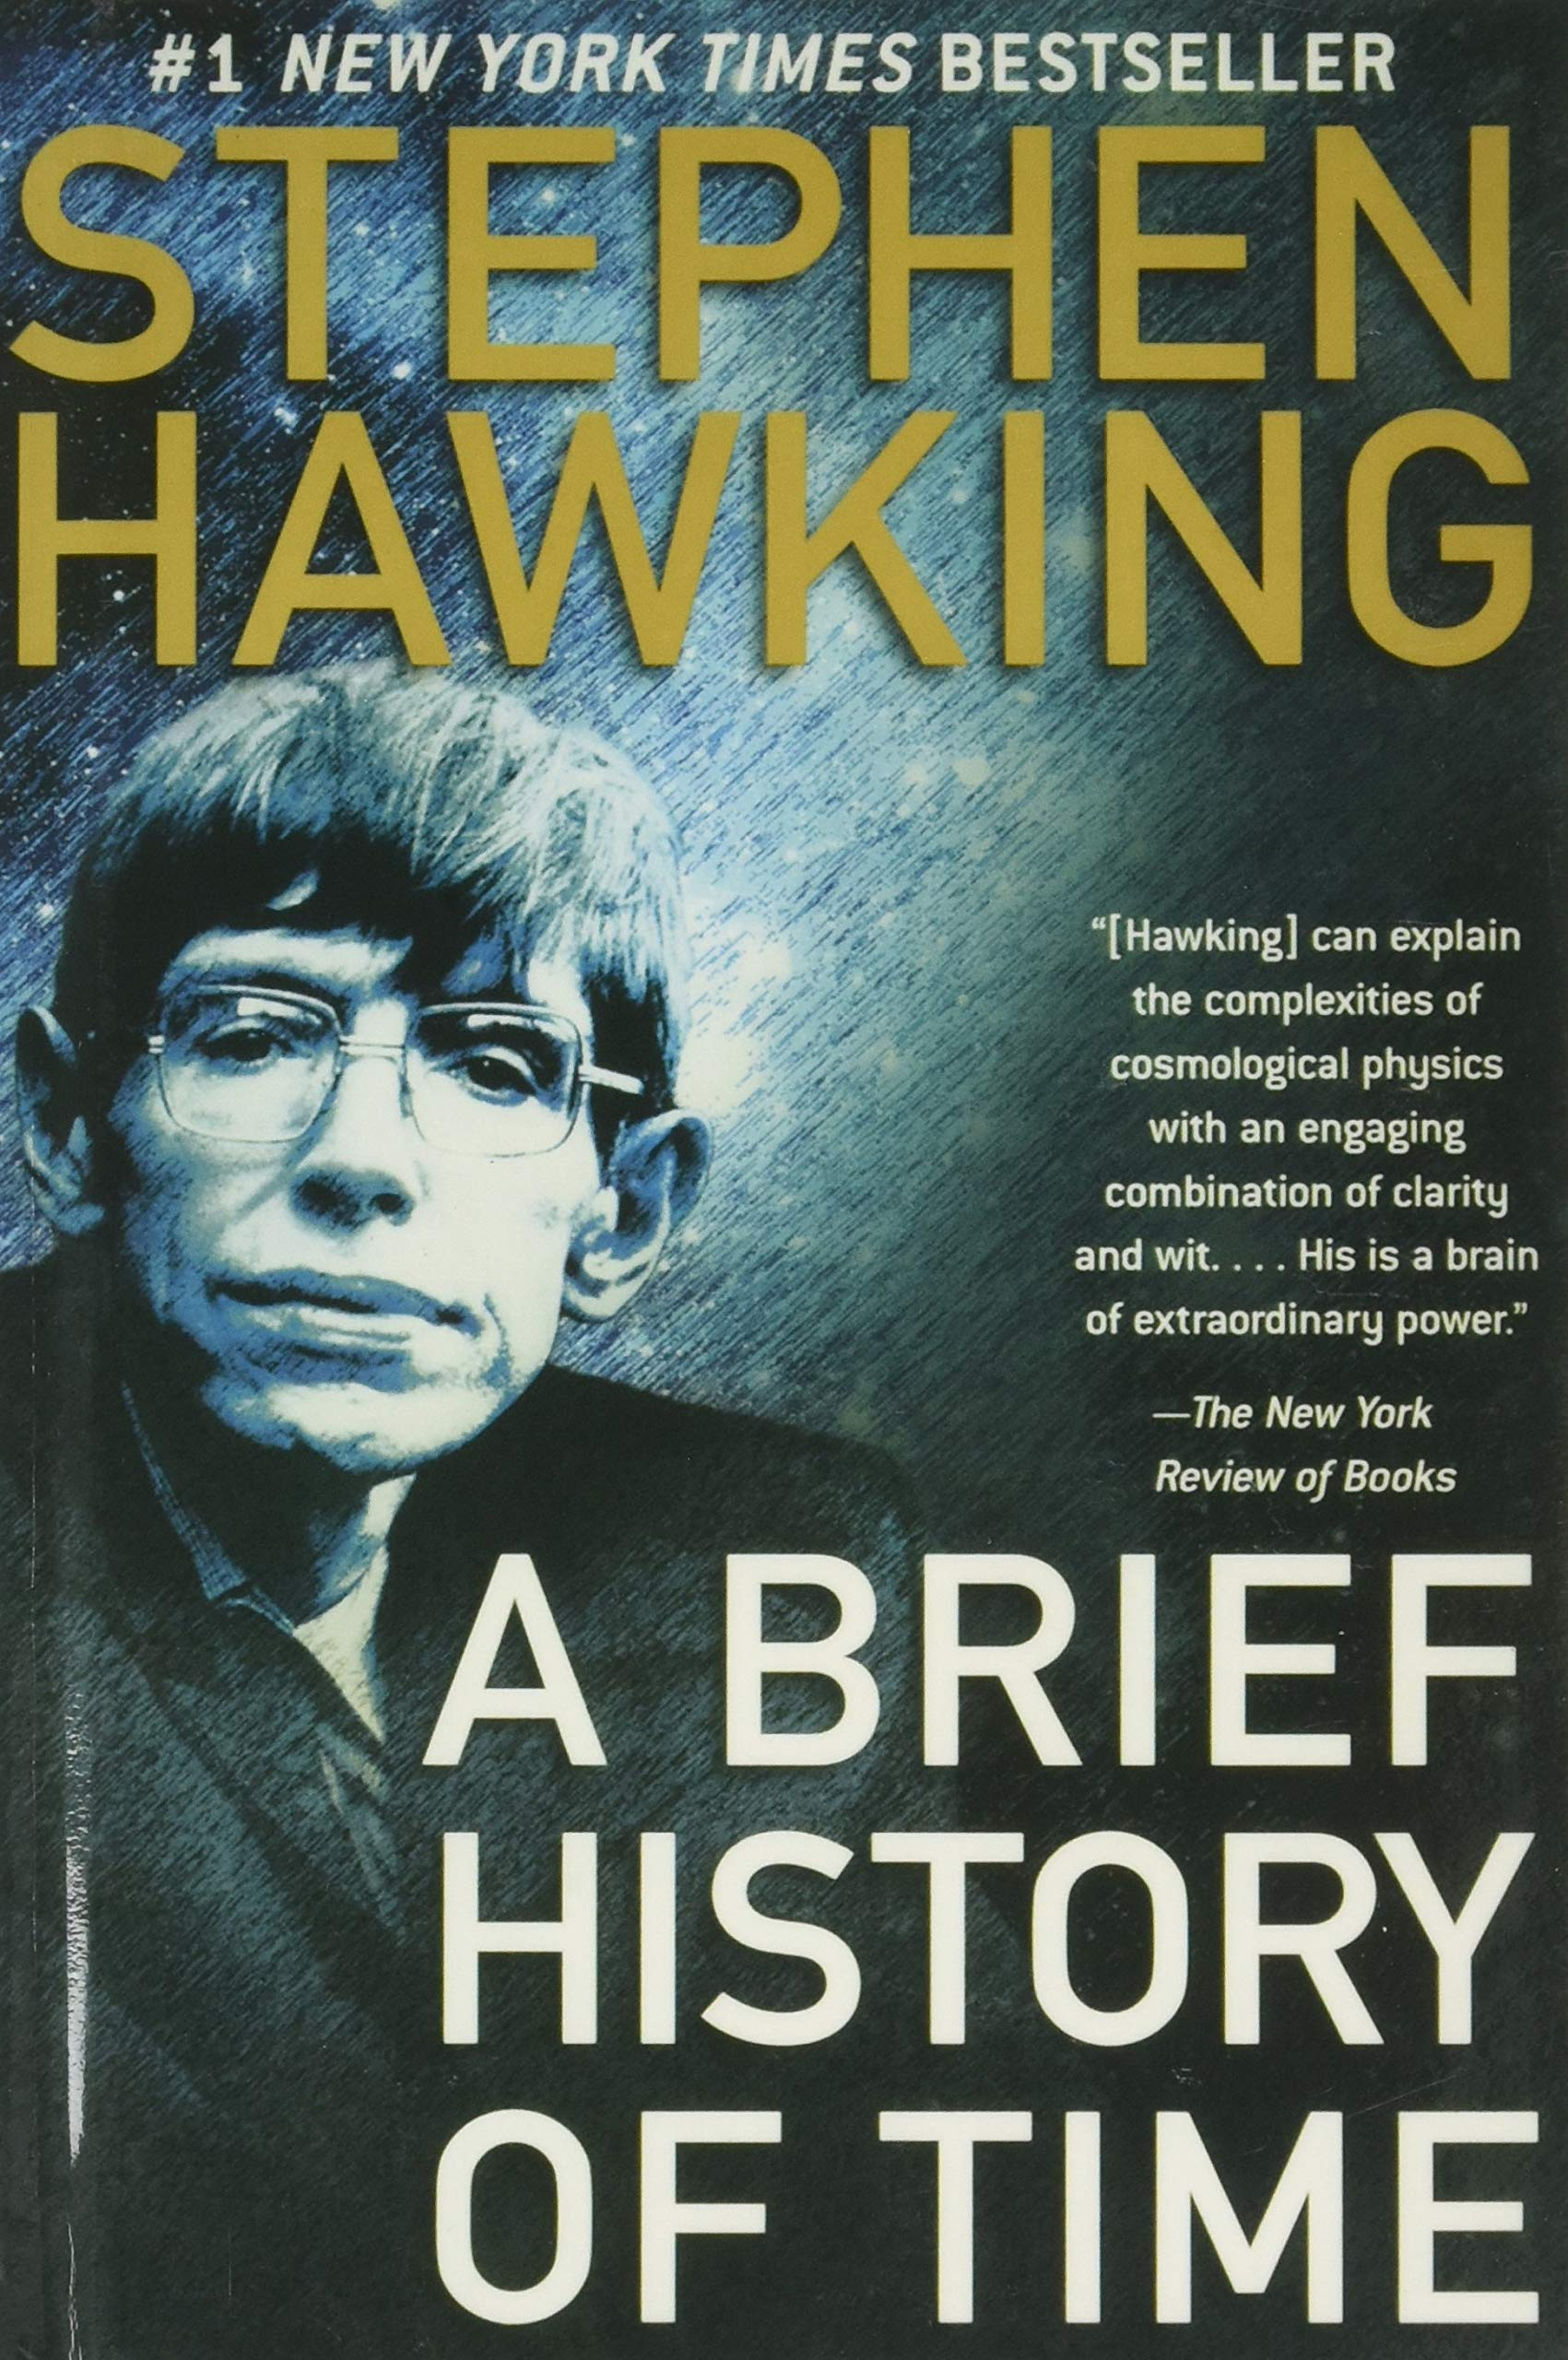 A Brief History of Time: Amazon.co.uk: Hawking, Stephen W.: 9781439503928: Books